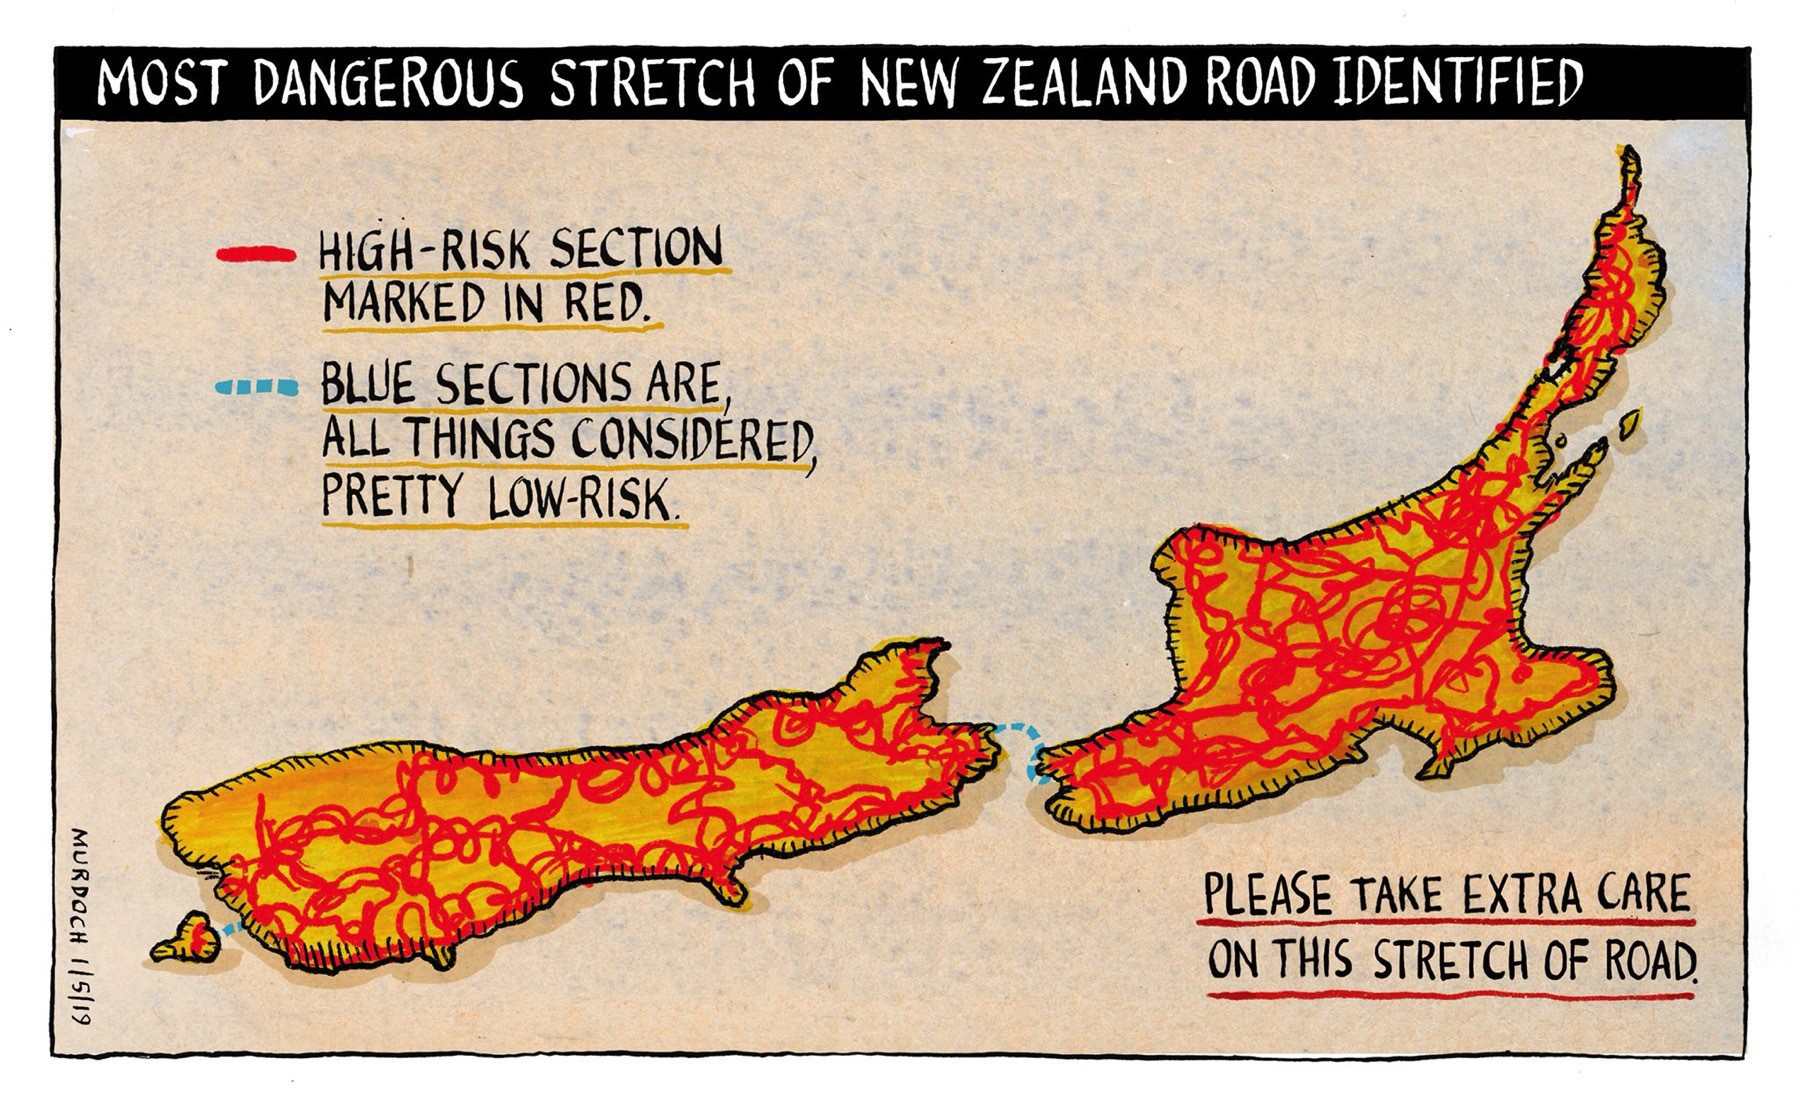 Pseudo map of New Zealand's roads, ALL marked in red for high-risk. Two ferry crossings are marked in blue as comparatively low risk.